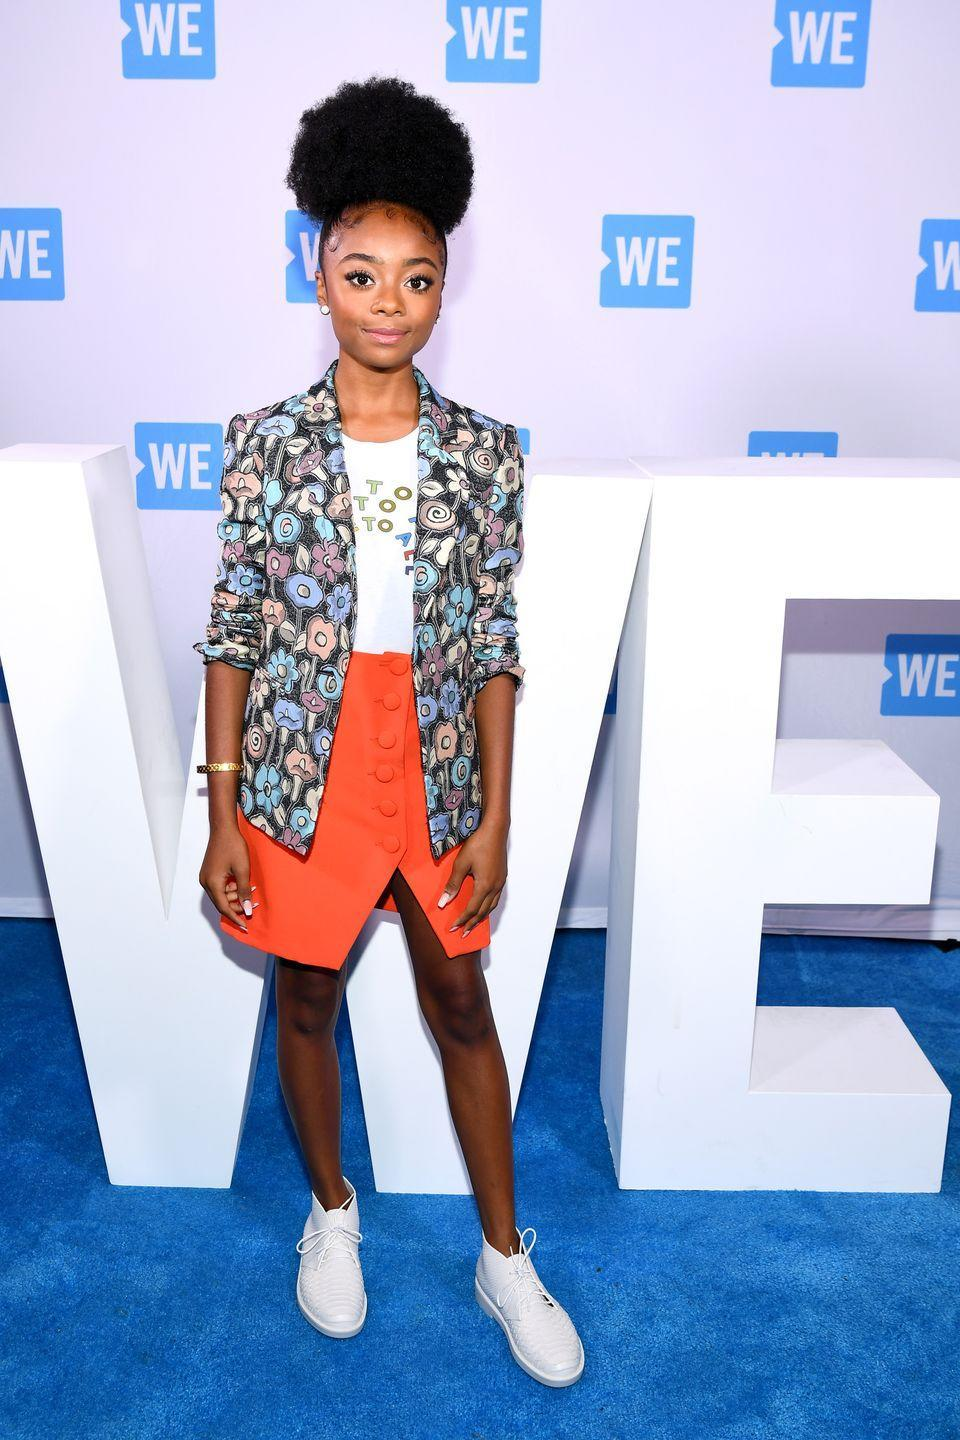 """<p>To secure the bag on that """"Most Likely to Become President"""" superlative, you've gotta put in the work. Which means, four years of professional-chic looks that slay. This printed look, paired with funky boots, nails that vibe completely. </p>"""